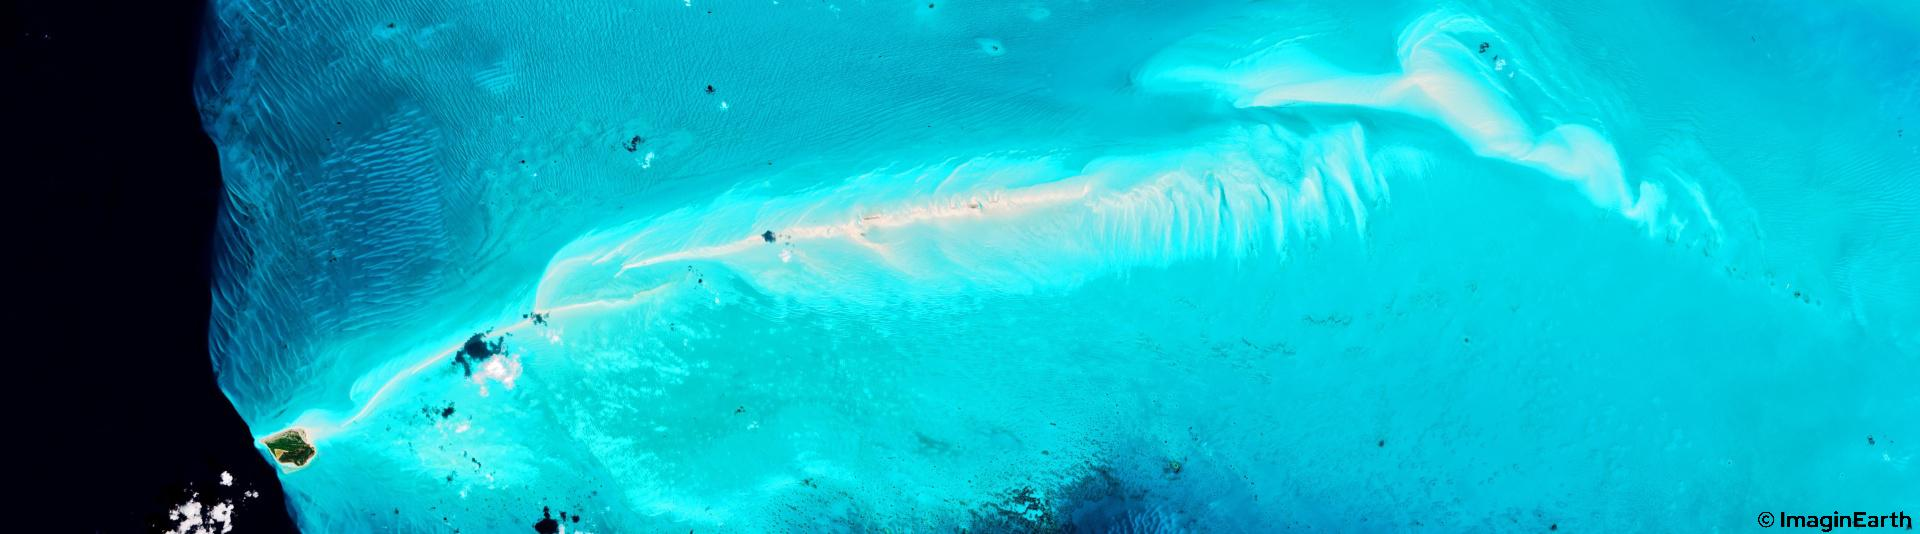 voyager iles bahamas belize, photo satellite